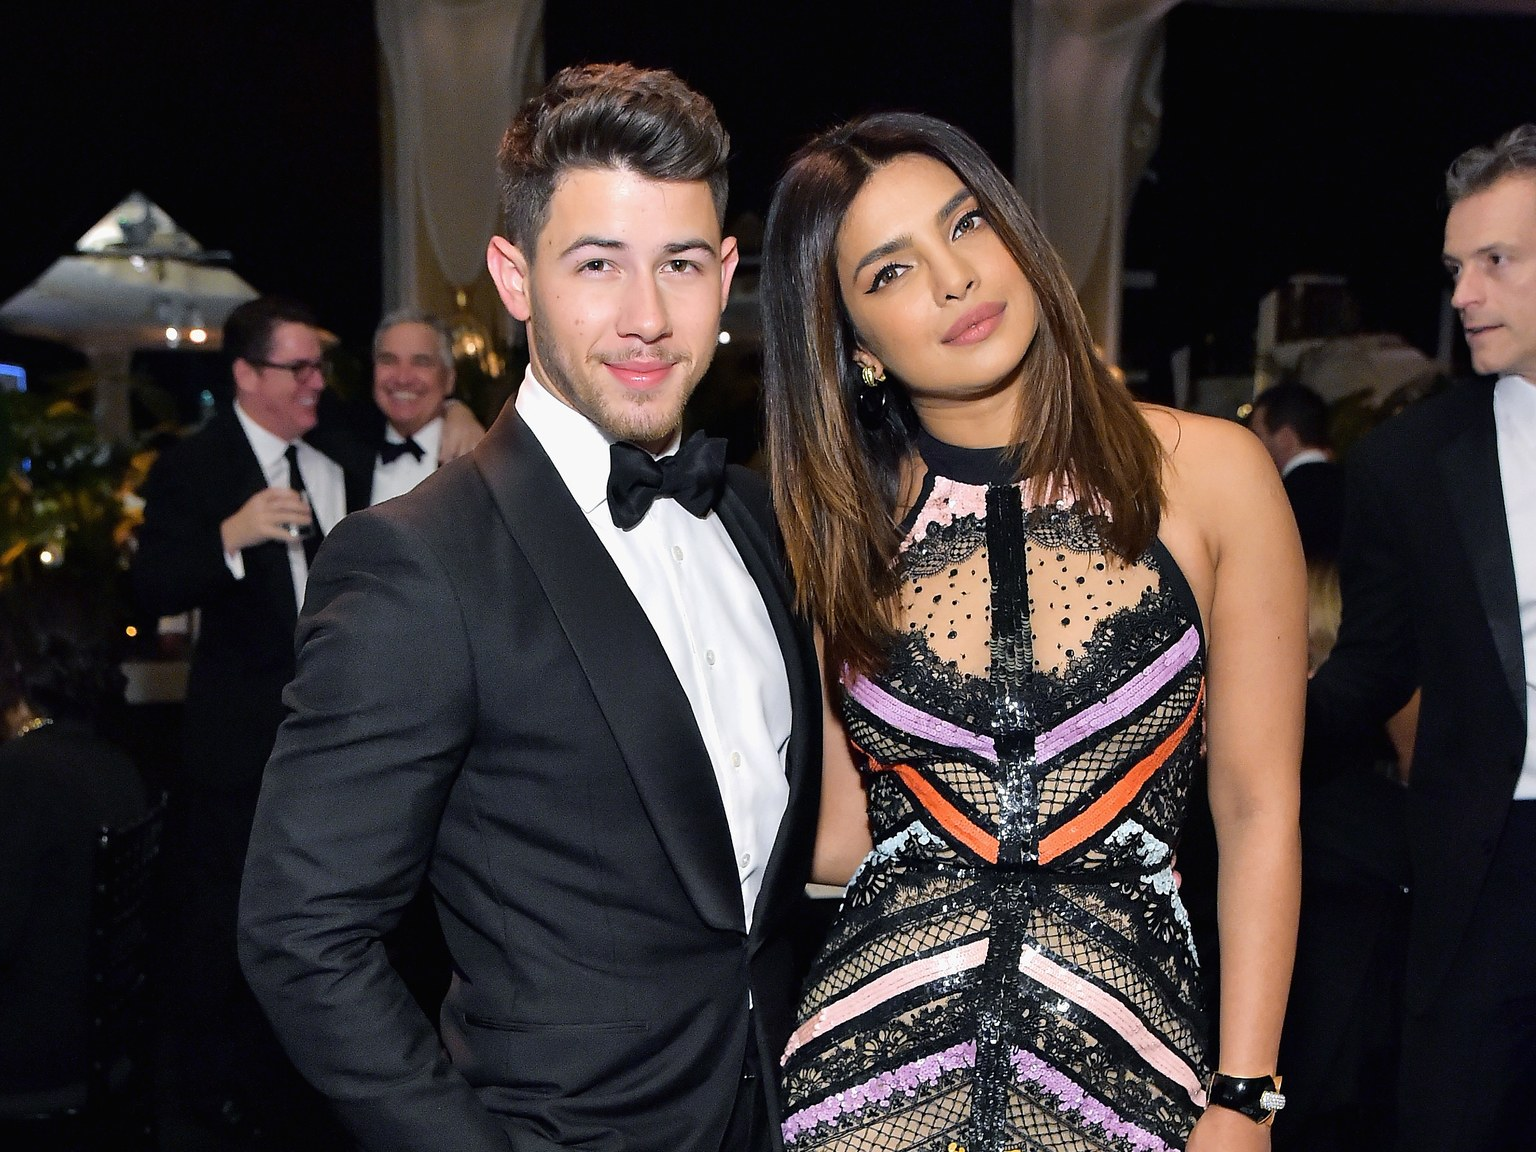 Marrying Nick Was Unexpected, Priyanka Chopra Says